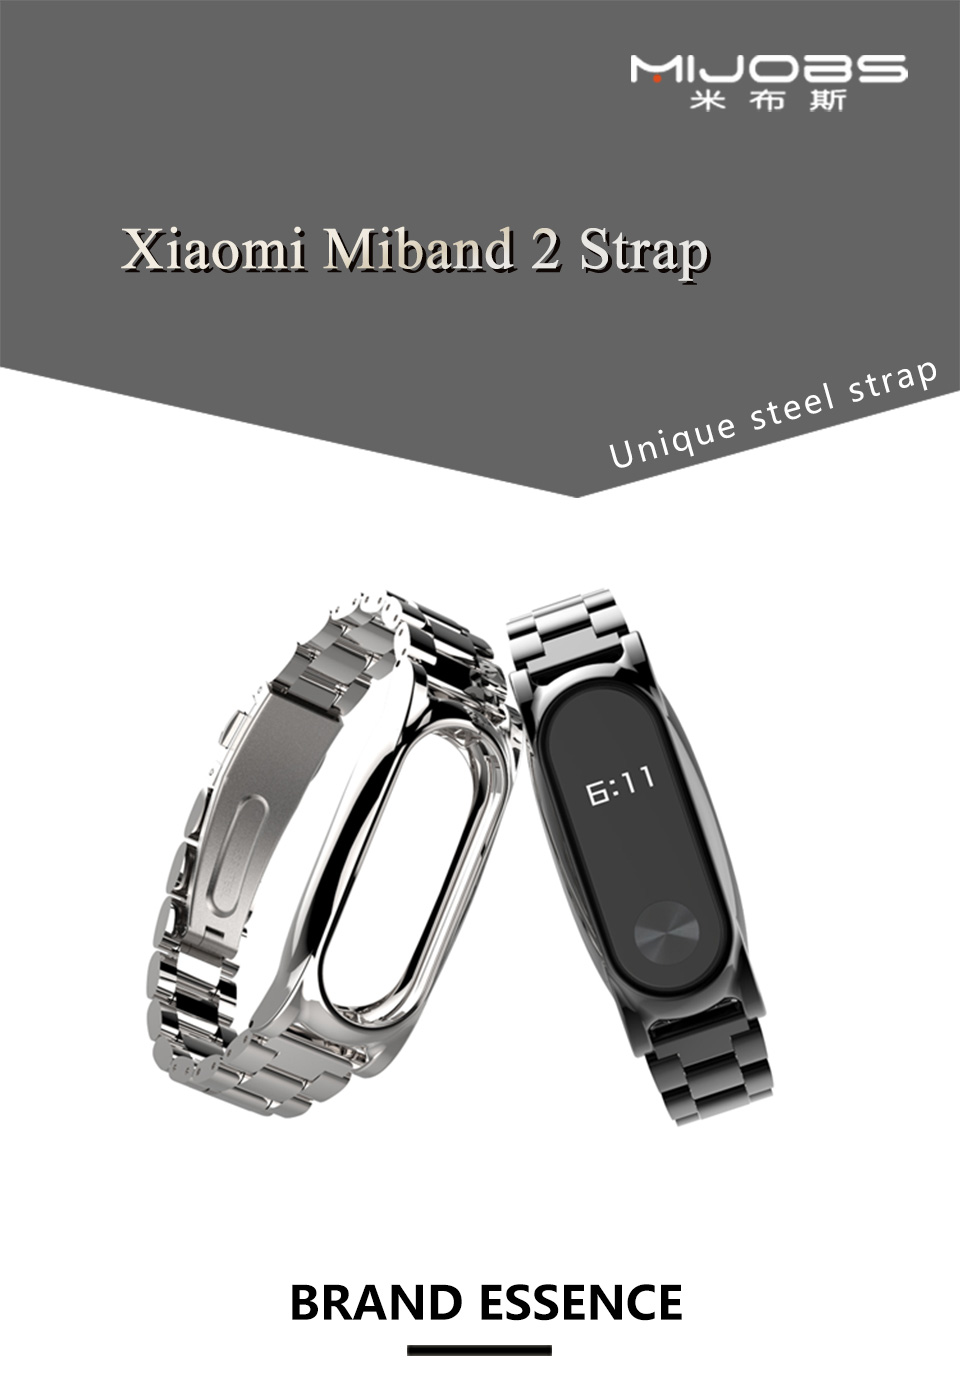 Stainless Steel Metal Strap For Xiaomi Mi Band2 Bracelet Replacement Mk Logic Plus White 50a Dp Pull Cord Ceiling Switch Pilot Light 20180107 124531 085 086 087 088 089 090 091